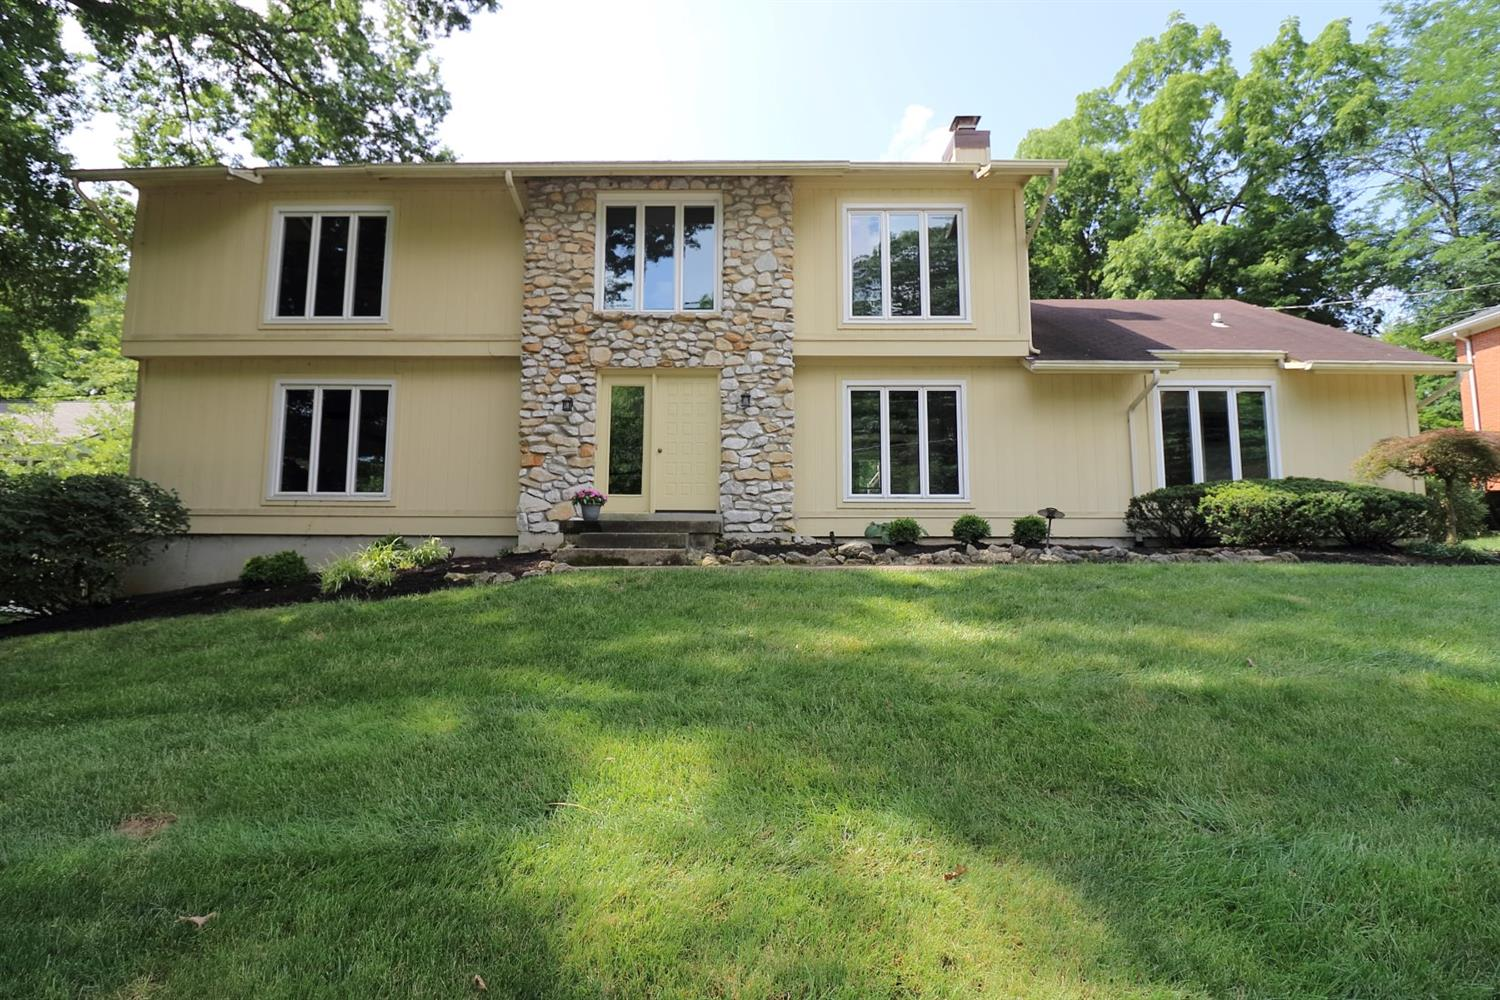 8485 Weller Rd Montgomery Oh 45249 Listing Details Mls